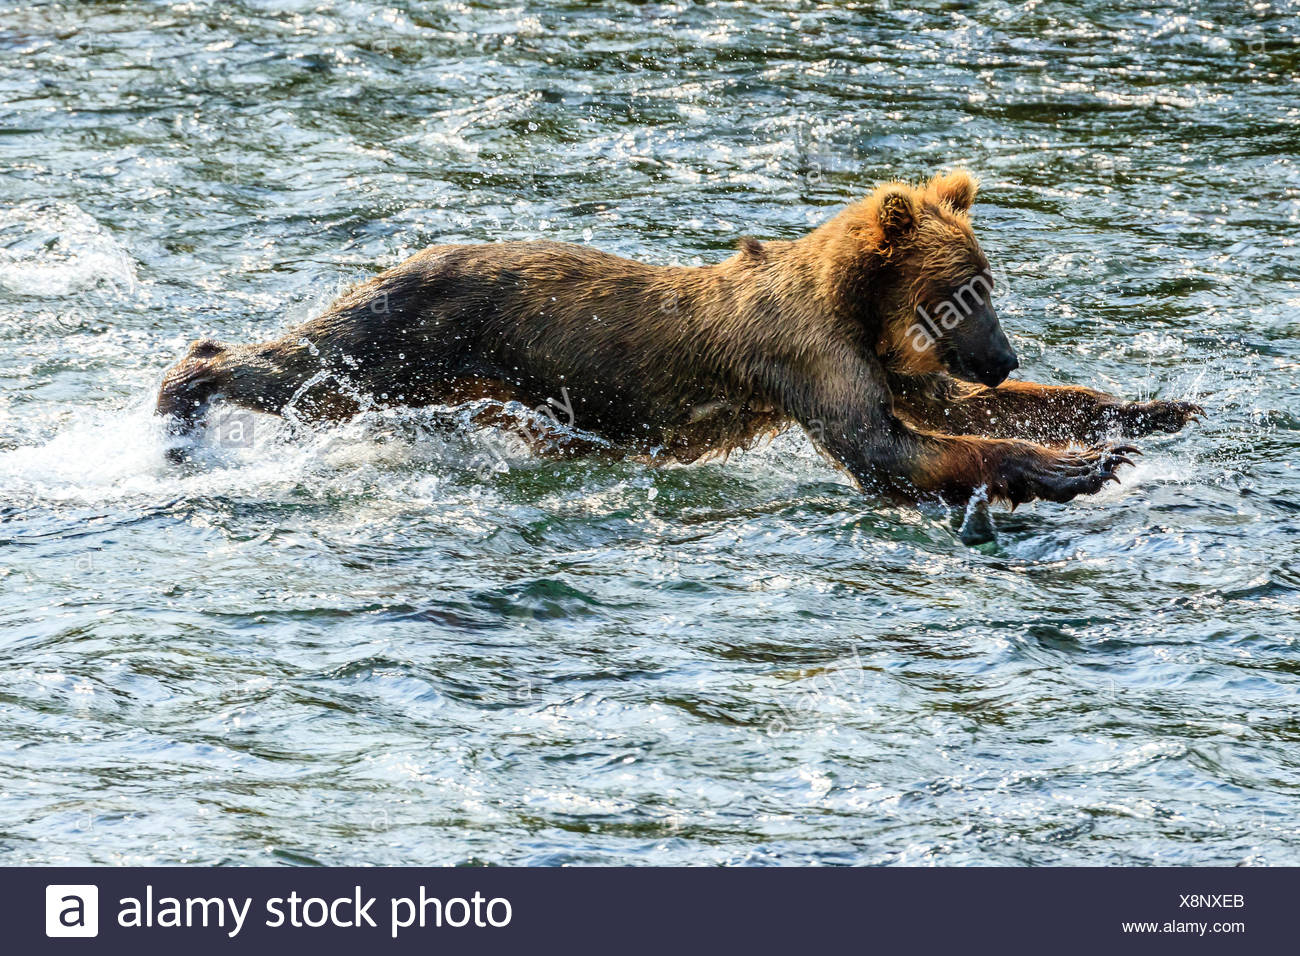 Yearling brown bear, Ursus arctos, fishing for salmon below Brooks Falls. - Stock Image